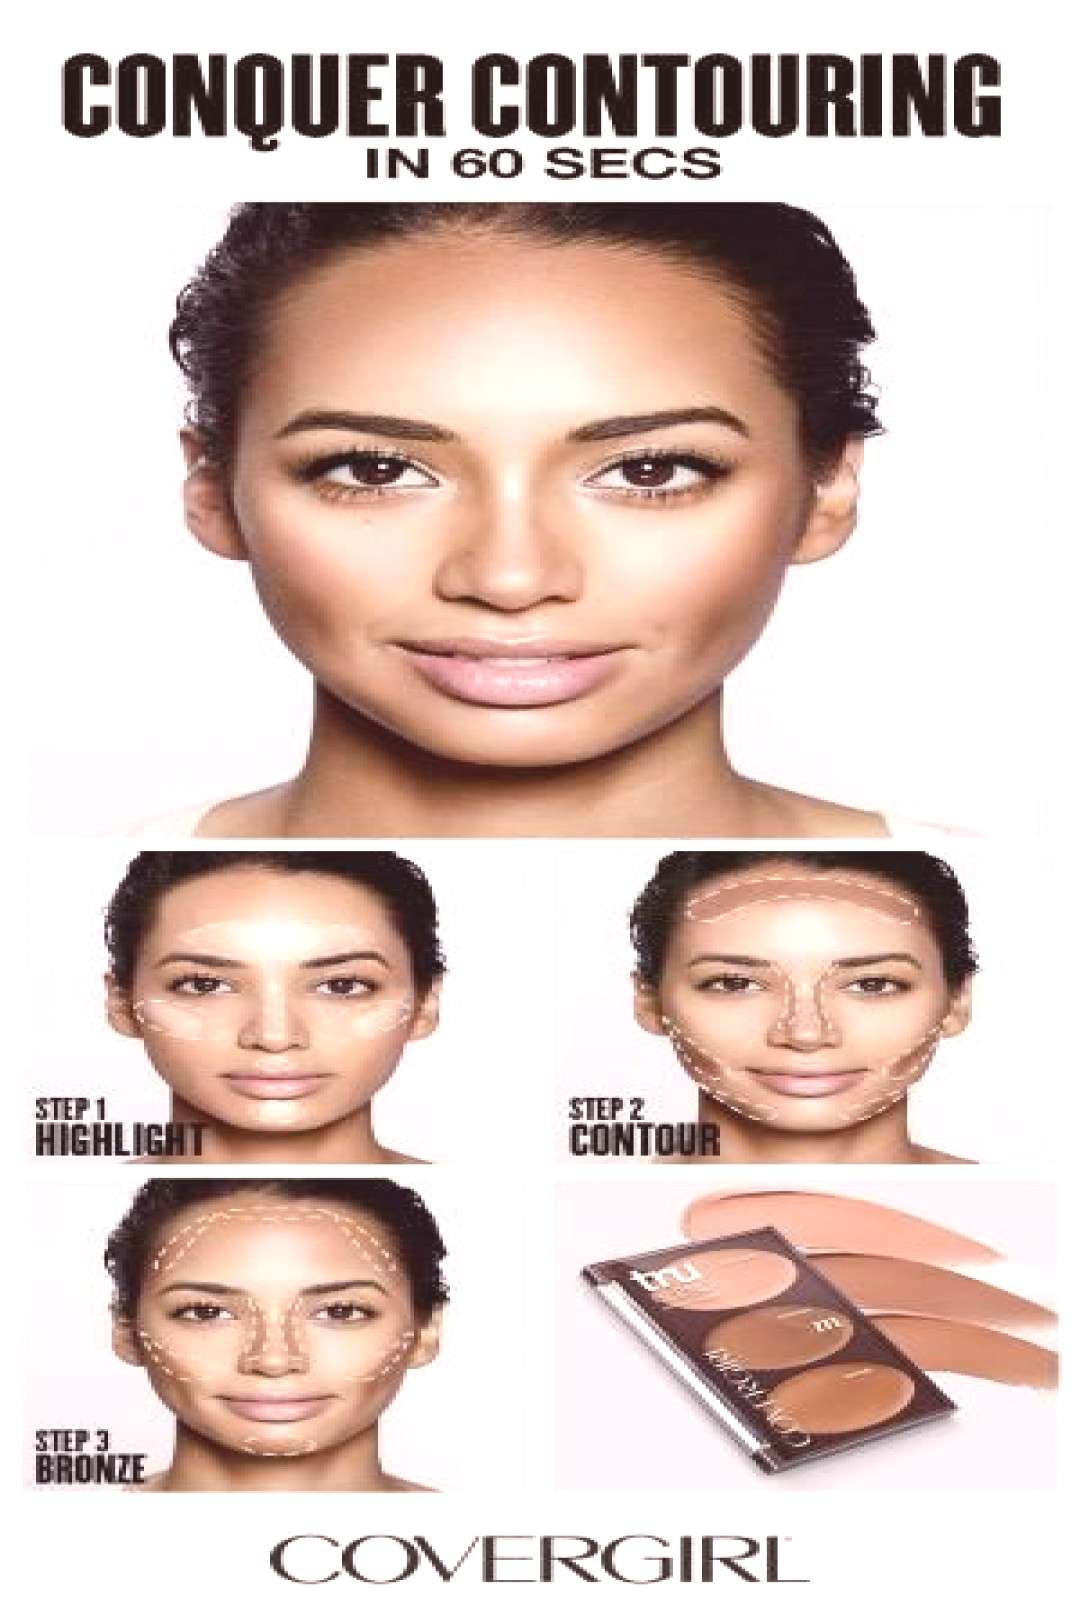 COVERGIRL shows you how to contour your face in 60 seconds! Follow COVERGIRL'S step-by-step conto